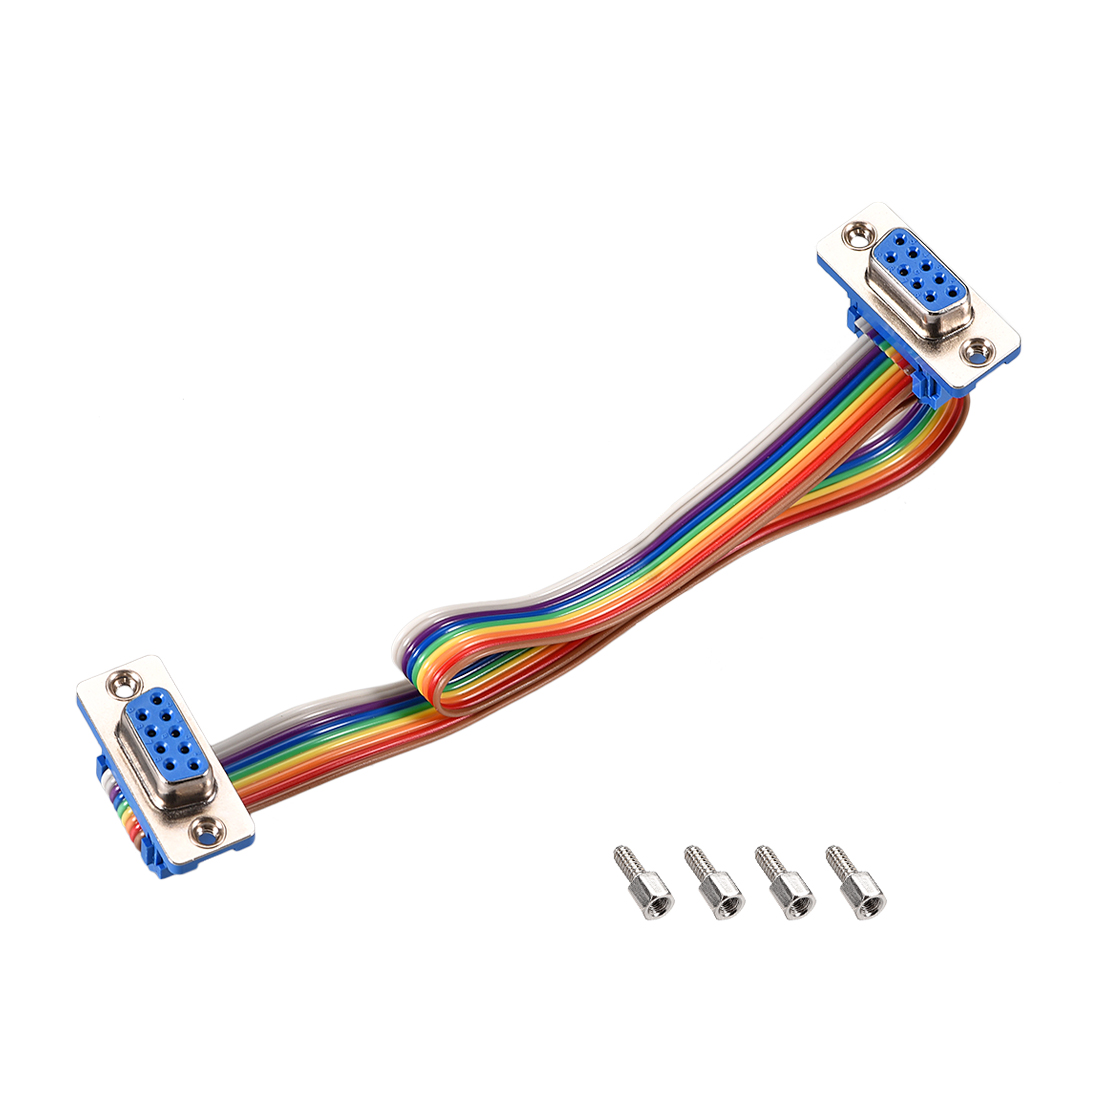 IDC Rainbow Wire Flat Ribbon Cable DB9 F/F Connector 2.54mm Pitch 11.8inch Long